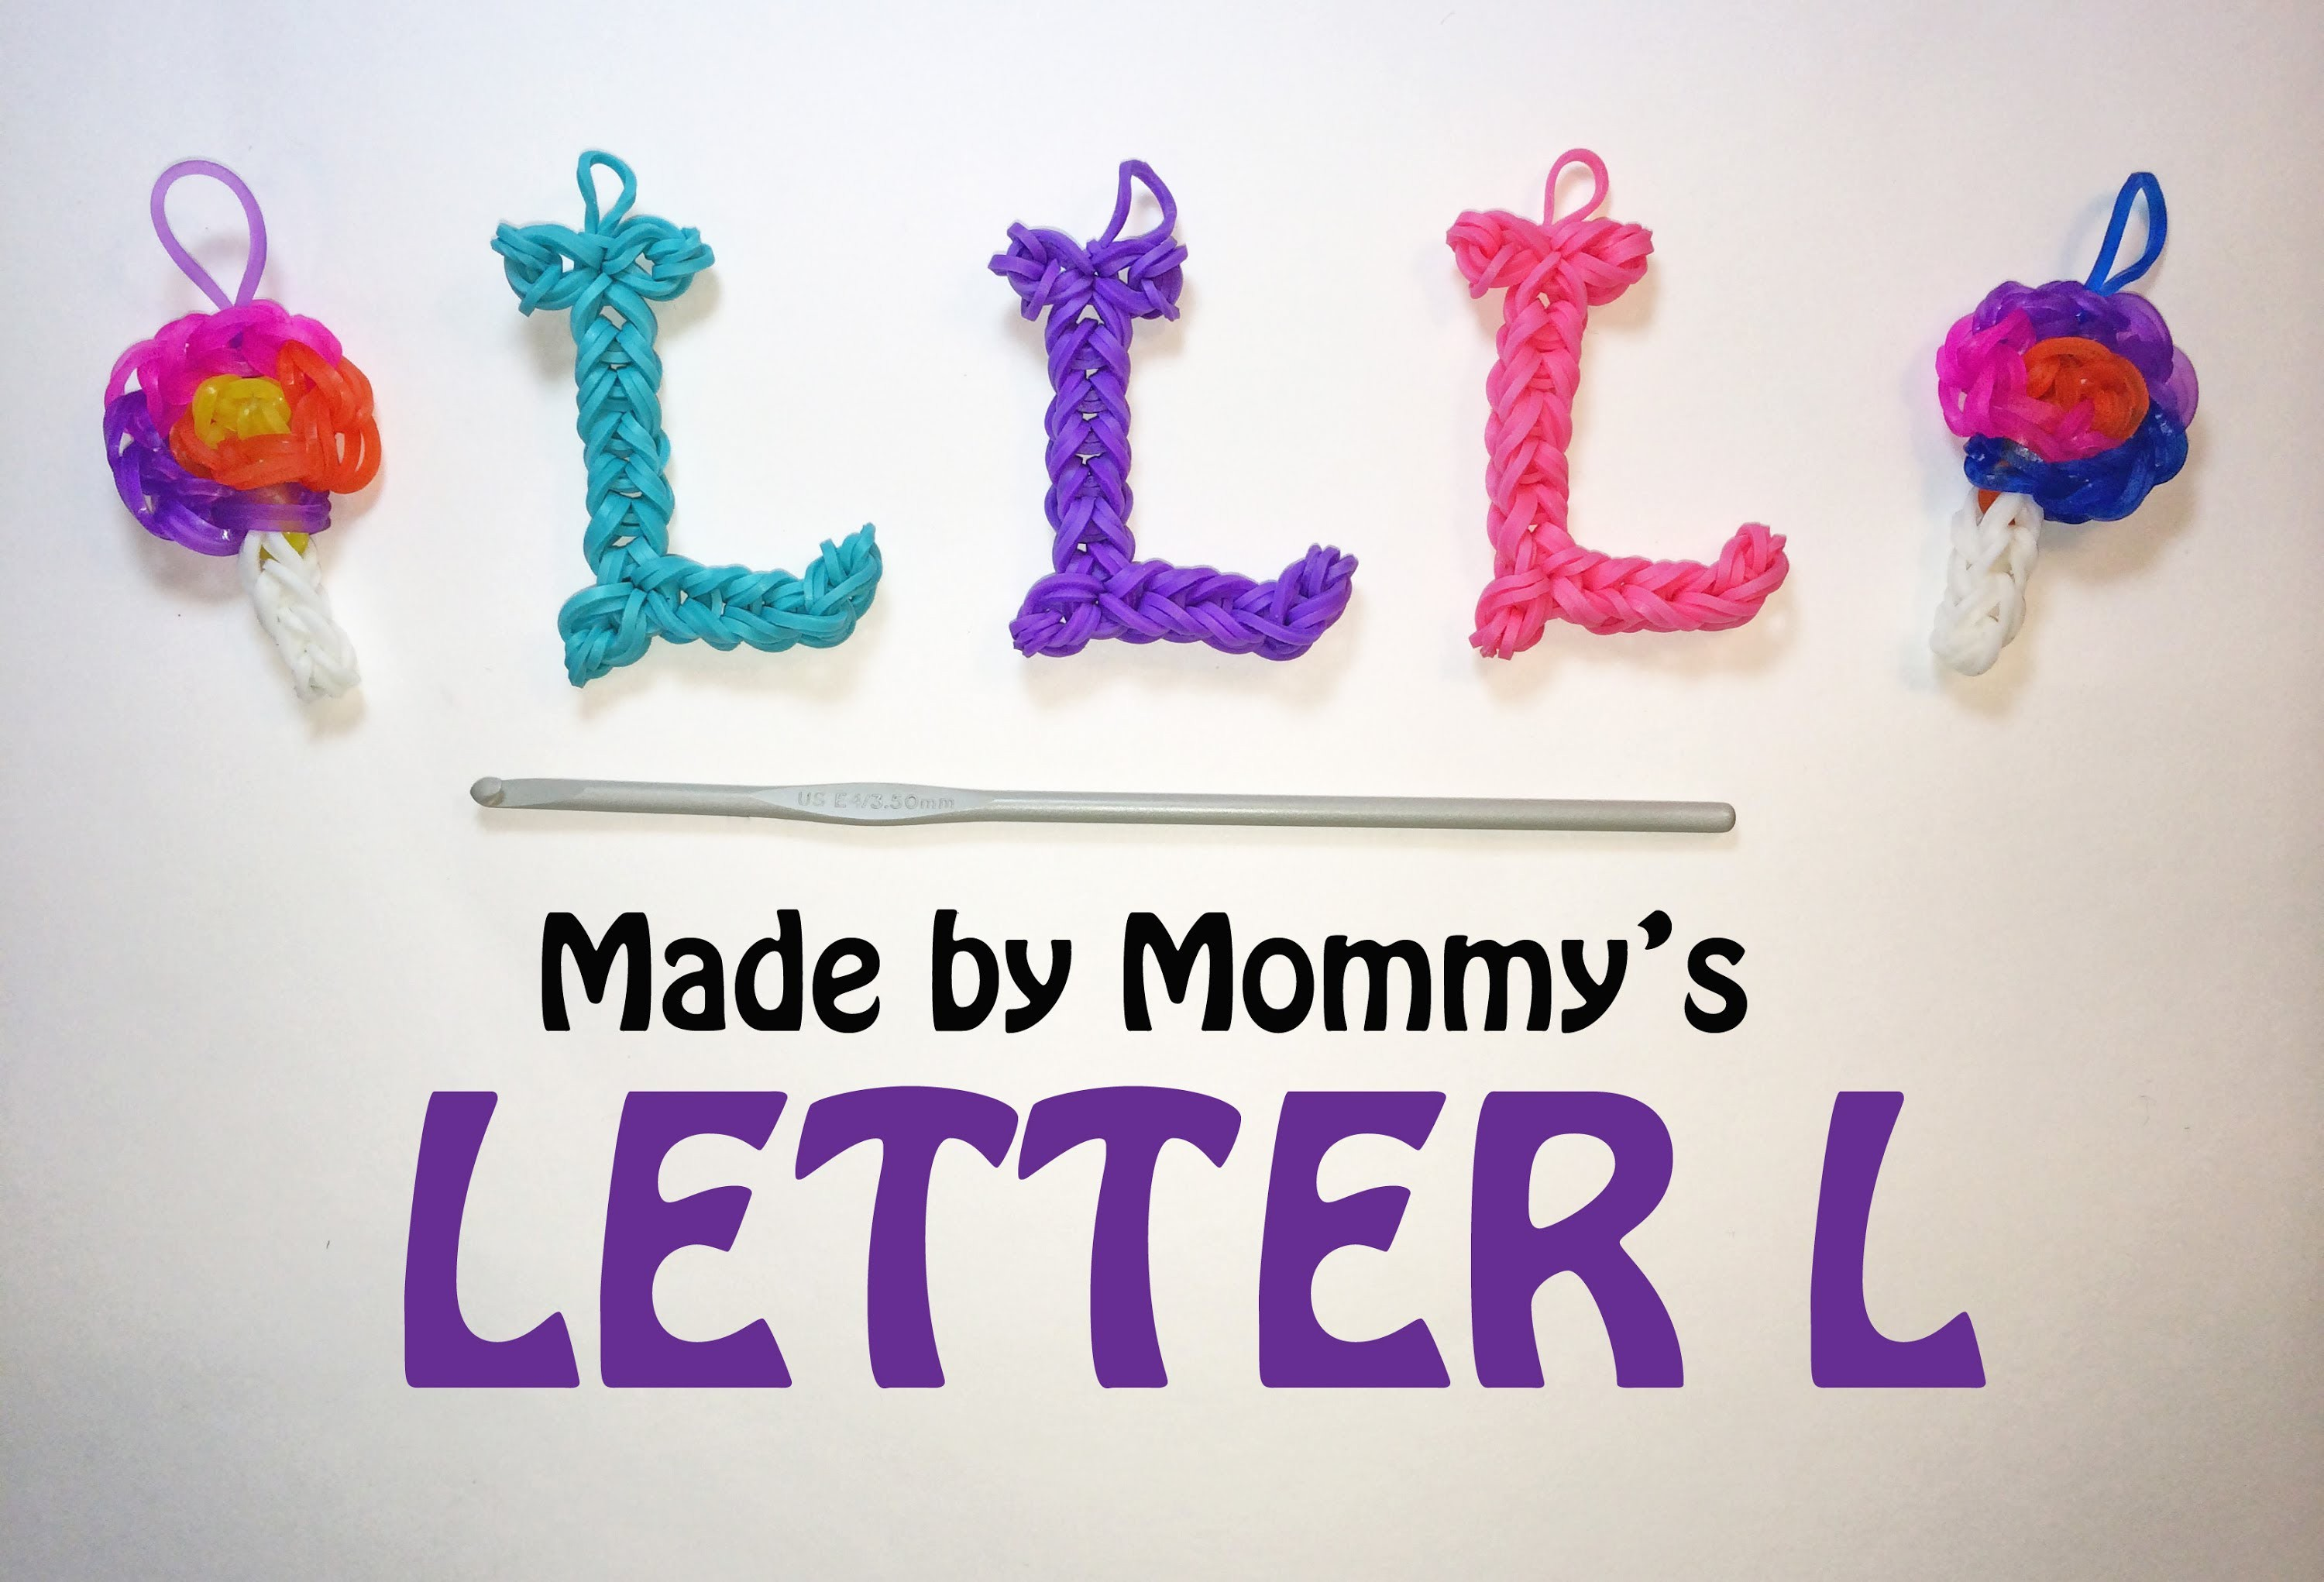 Letter L Charm With a Crochet Hook and Rainbow Loom Bands